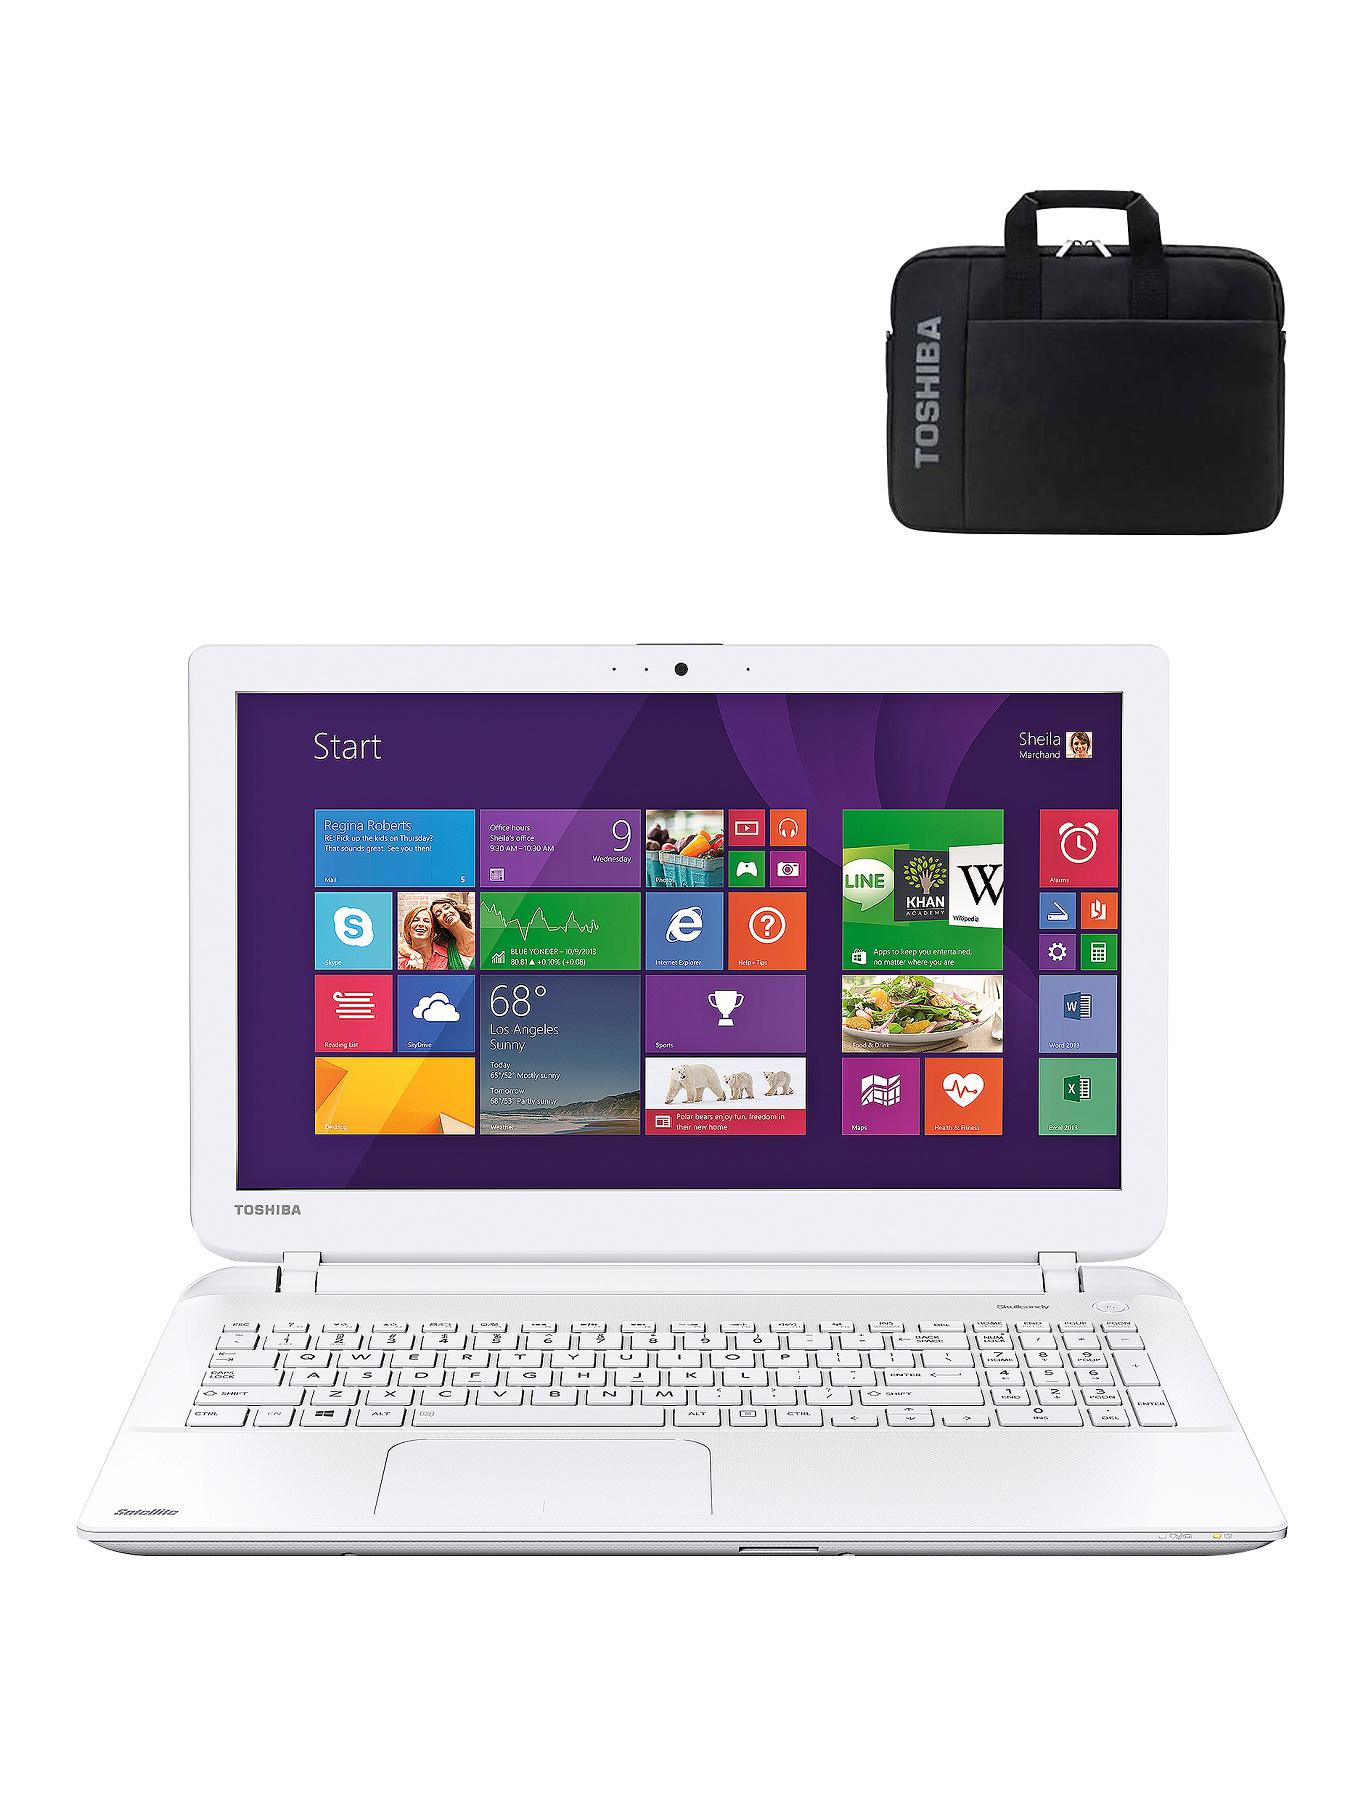 Toshiba L50D-B-16Q AMD E1 Processor, 6Gb RAM, 1Tb Hard Drive, Wi-Fi, 15.6 inch Laptop with FREE Laptop Bag - White